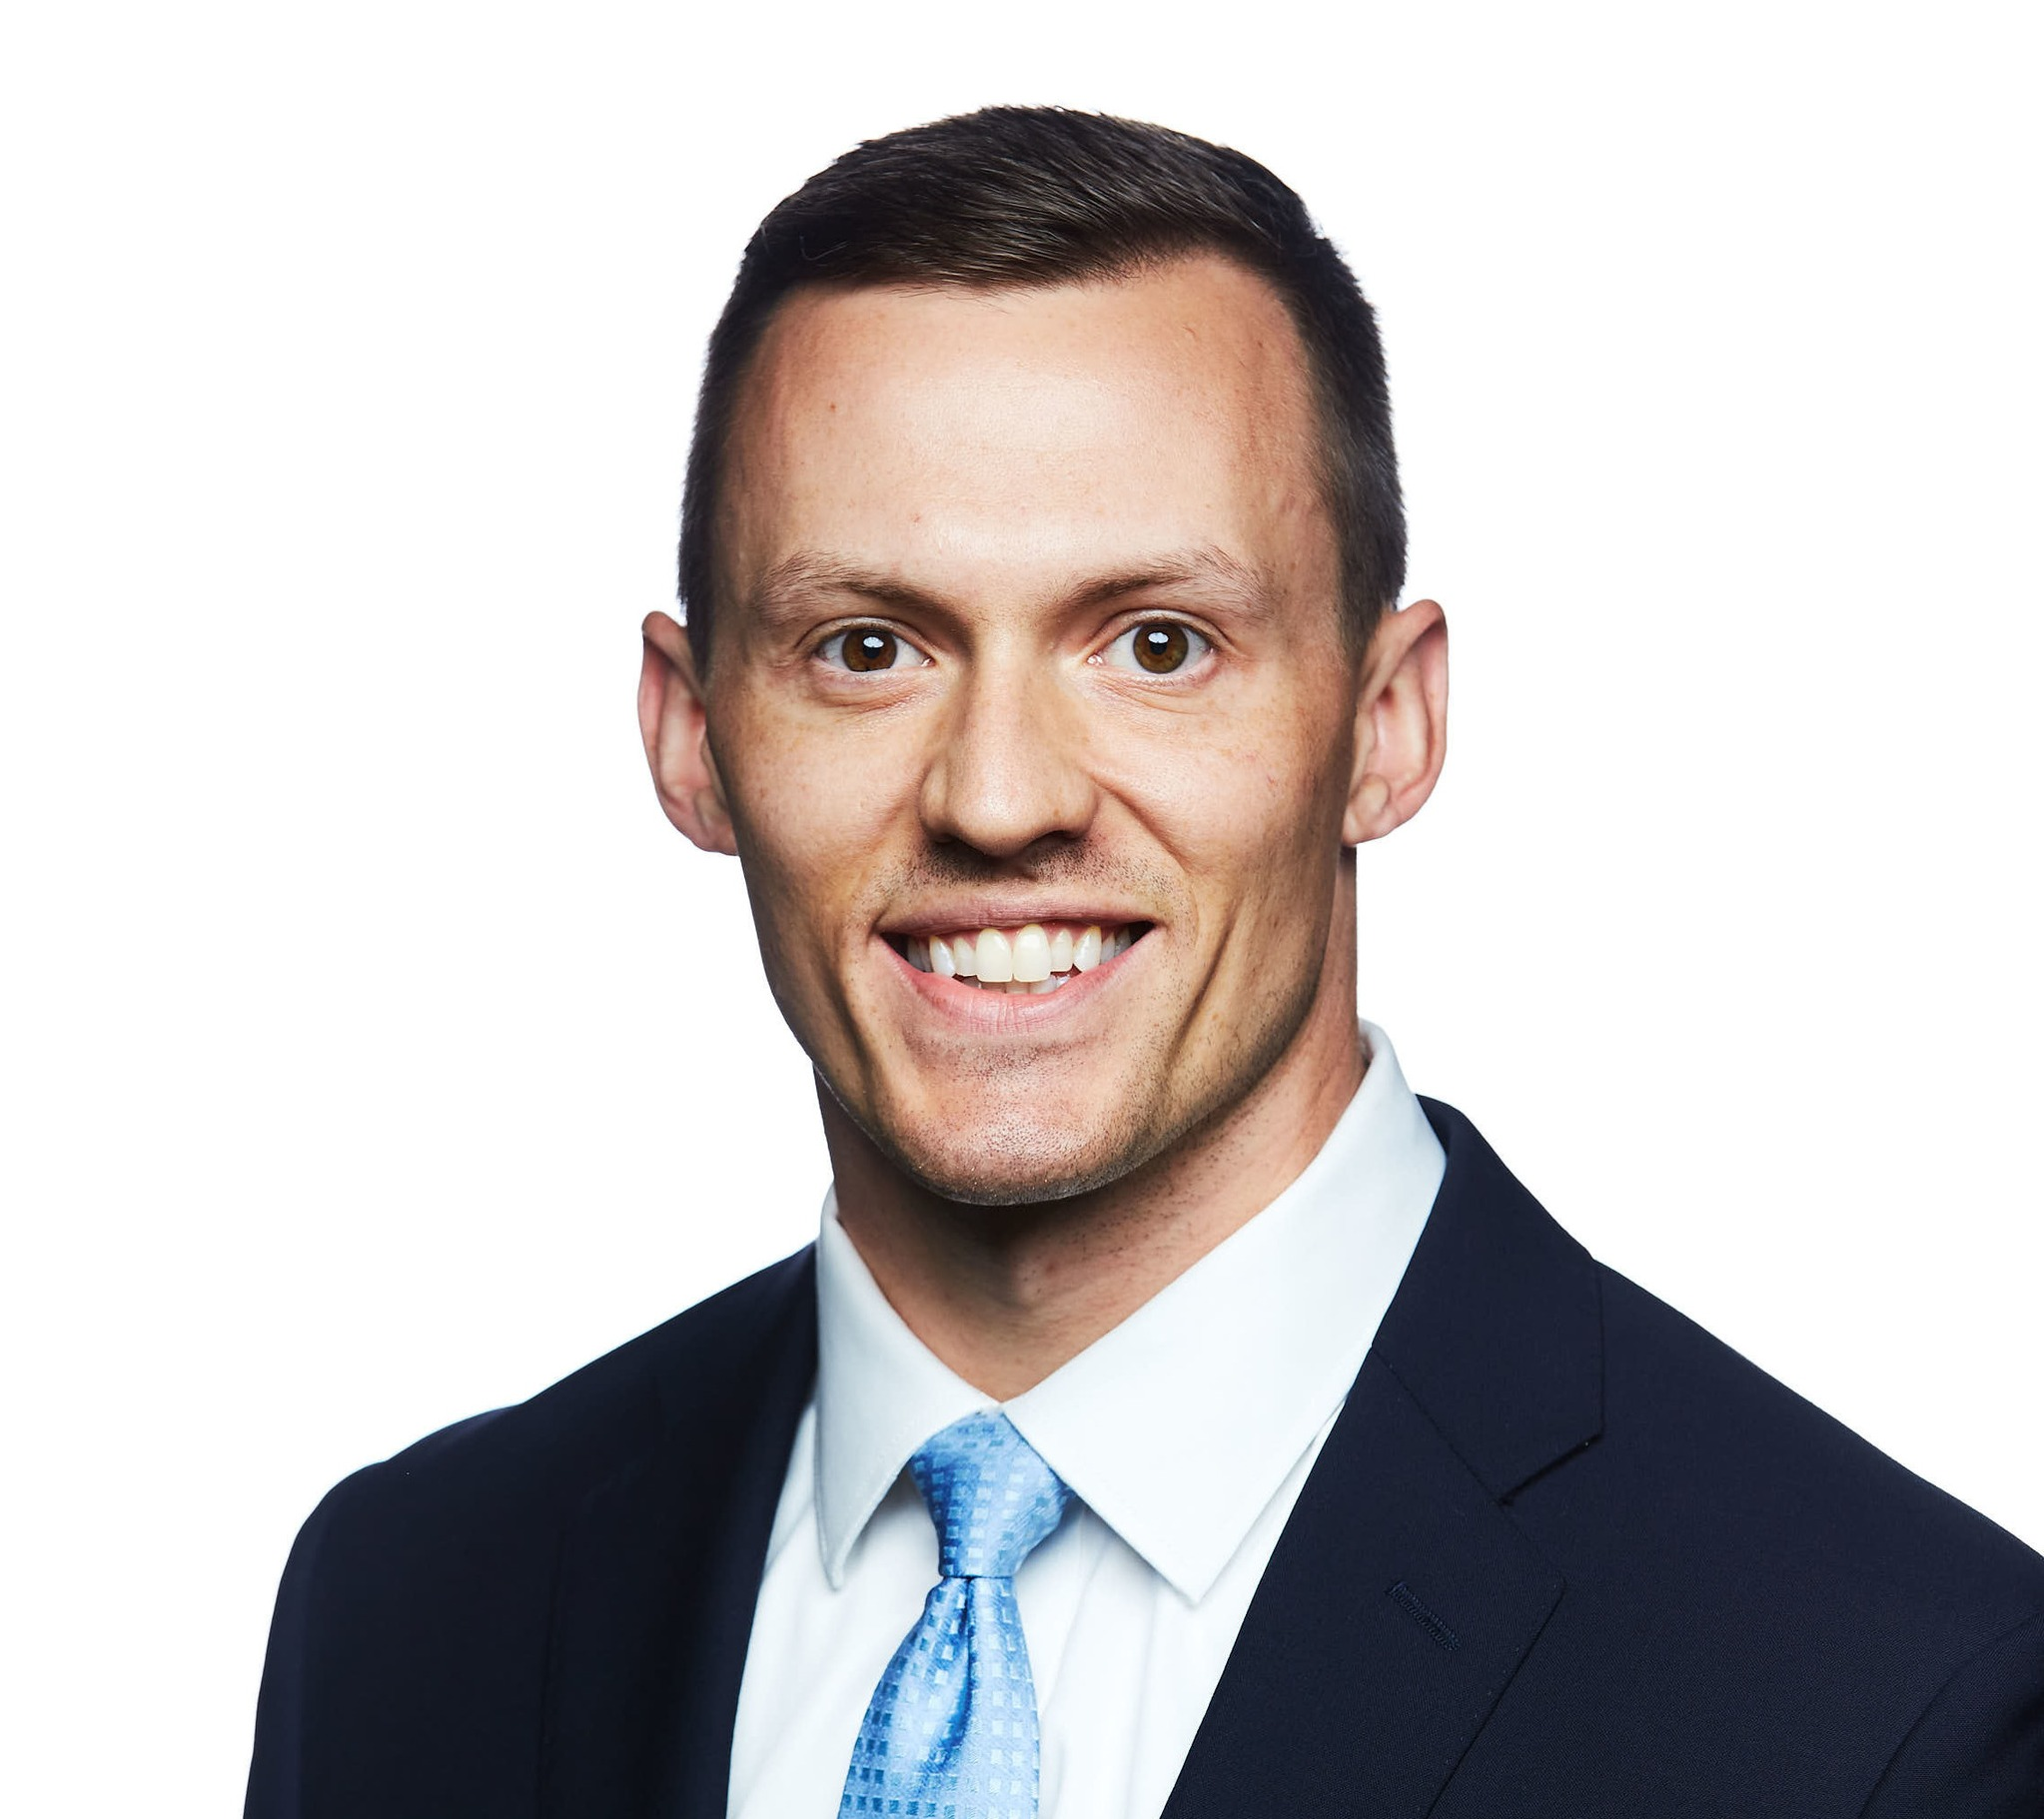 Picture of Chad Papineau, Senior Director of Business Development at Advanced Clinical